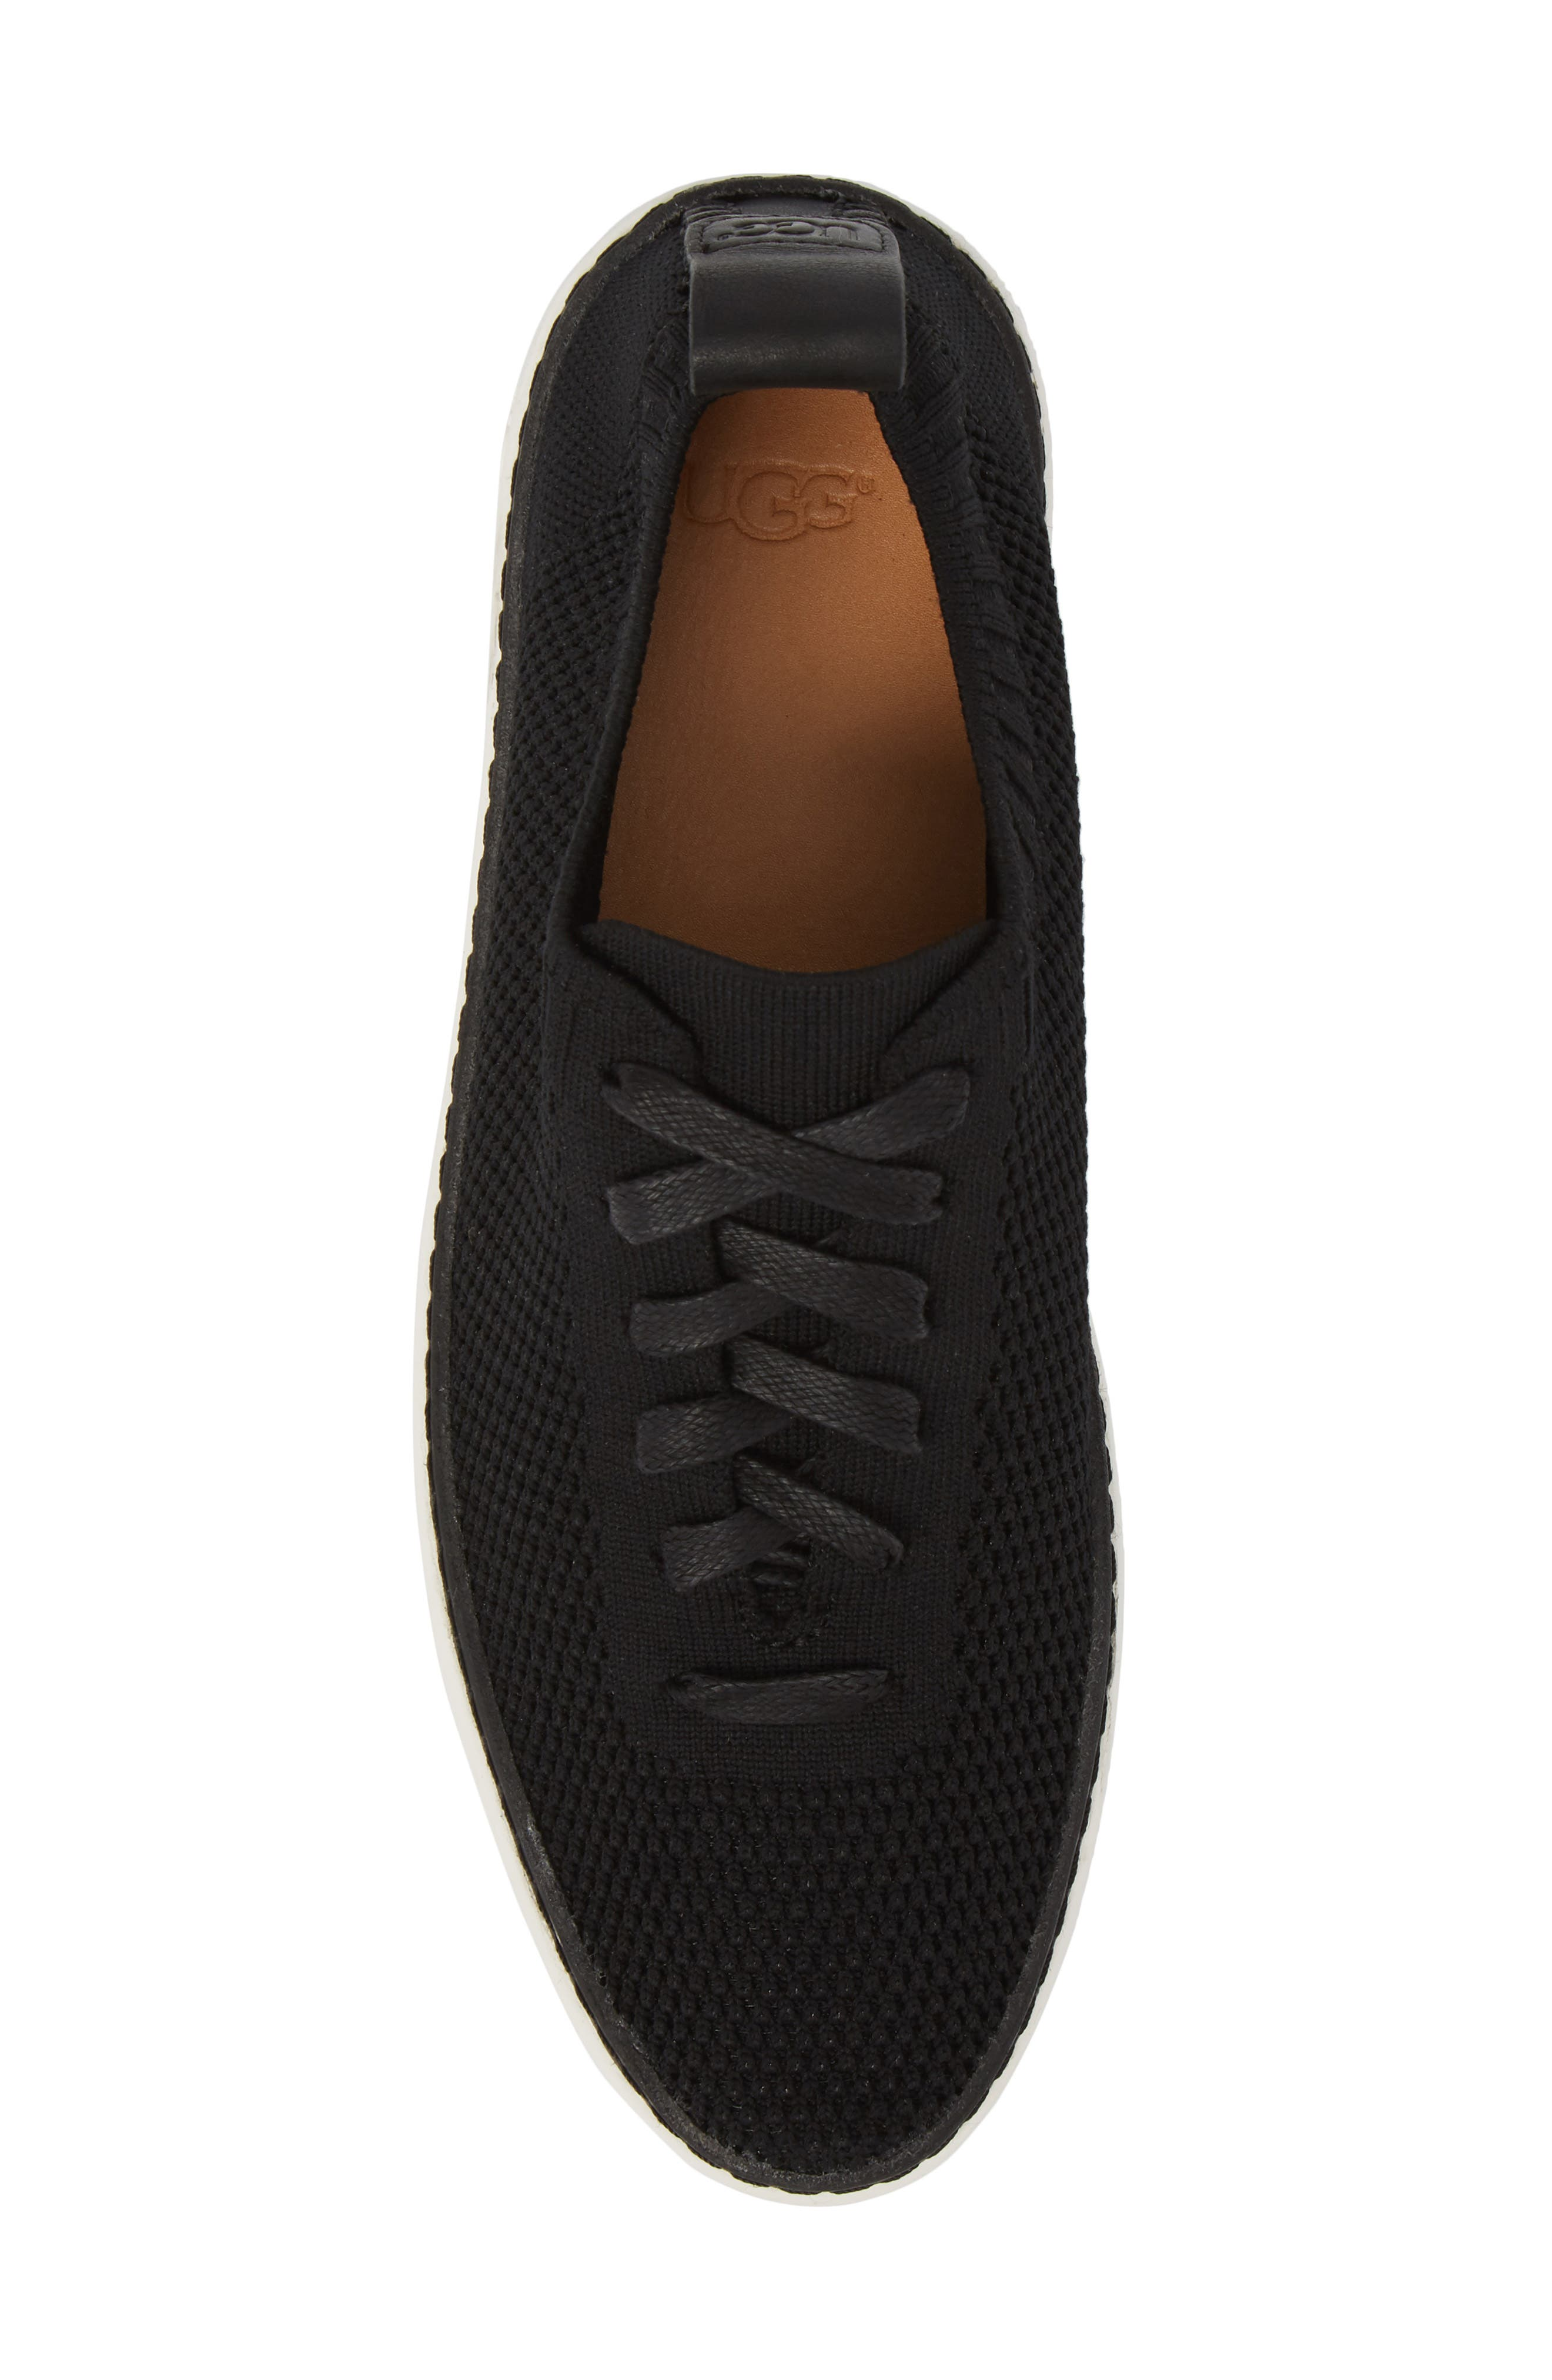 UGG<SUP>®</SUP>, Sidney Sneaker, Alternate thumbnail 5, color, BLACK FABRIC